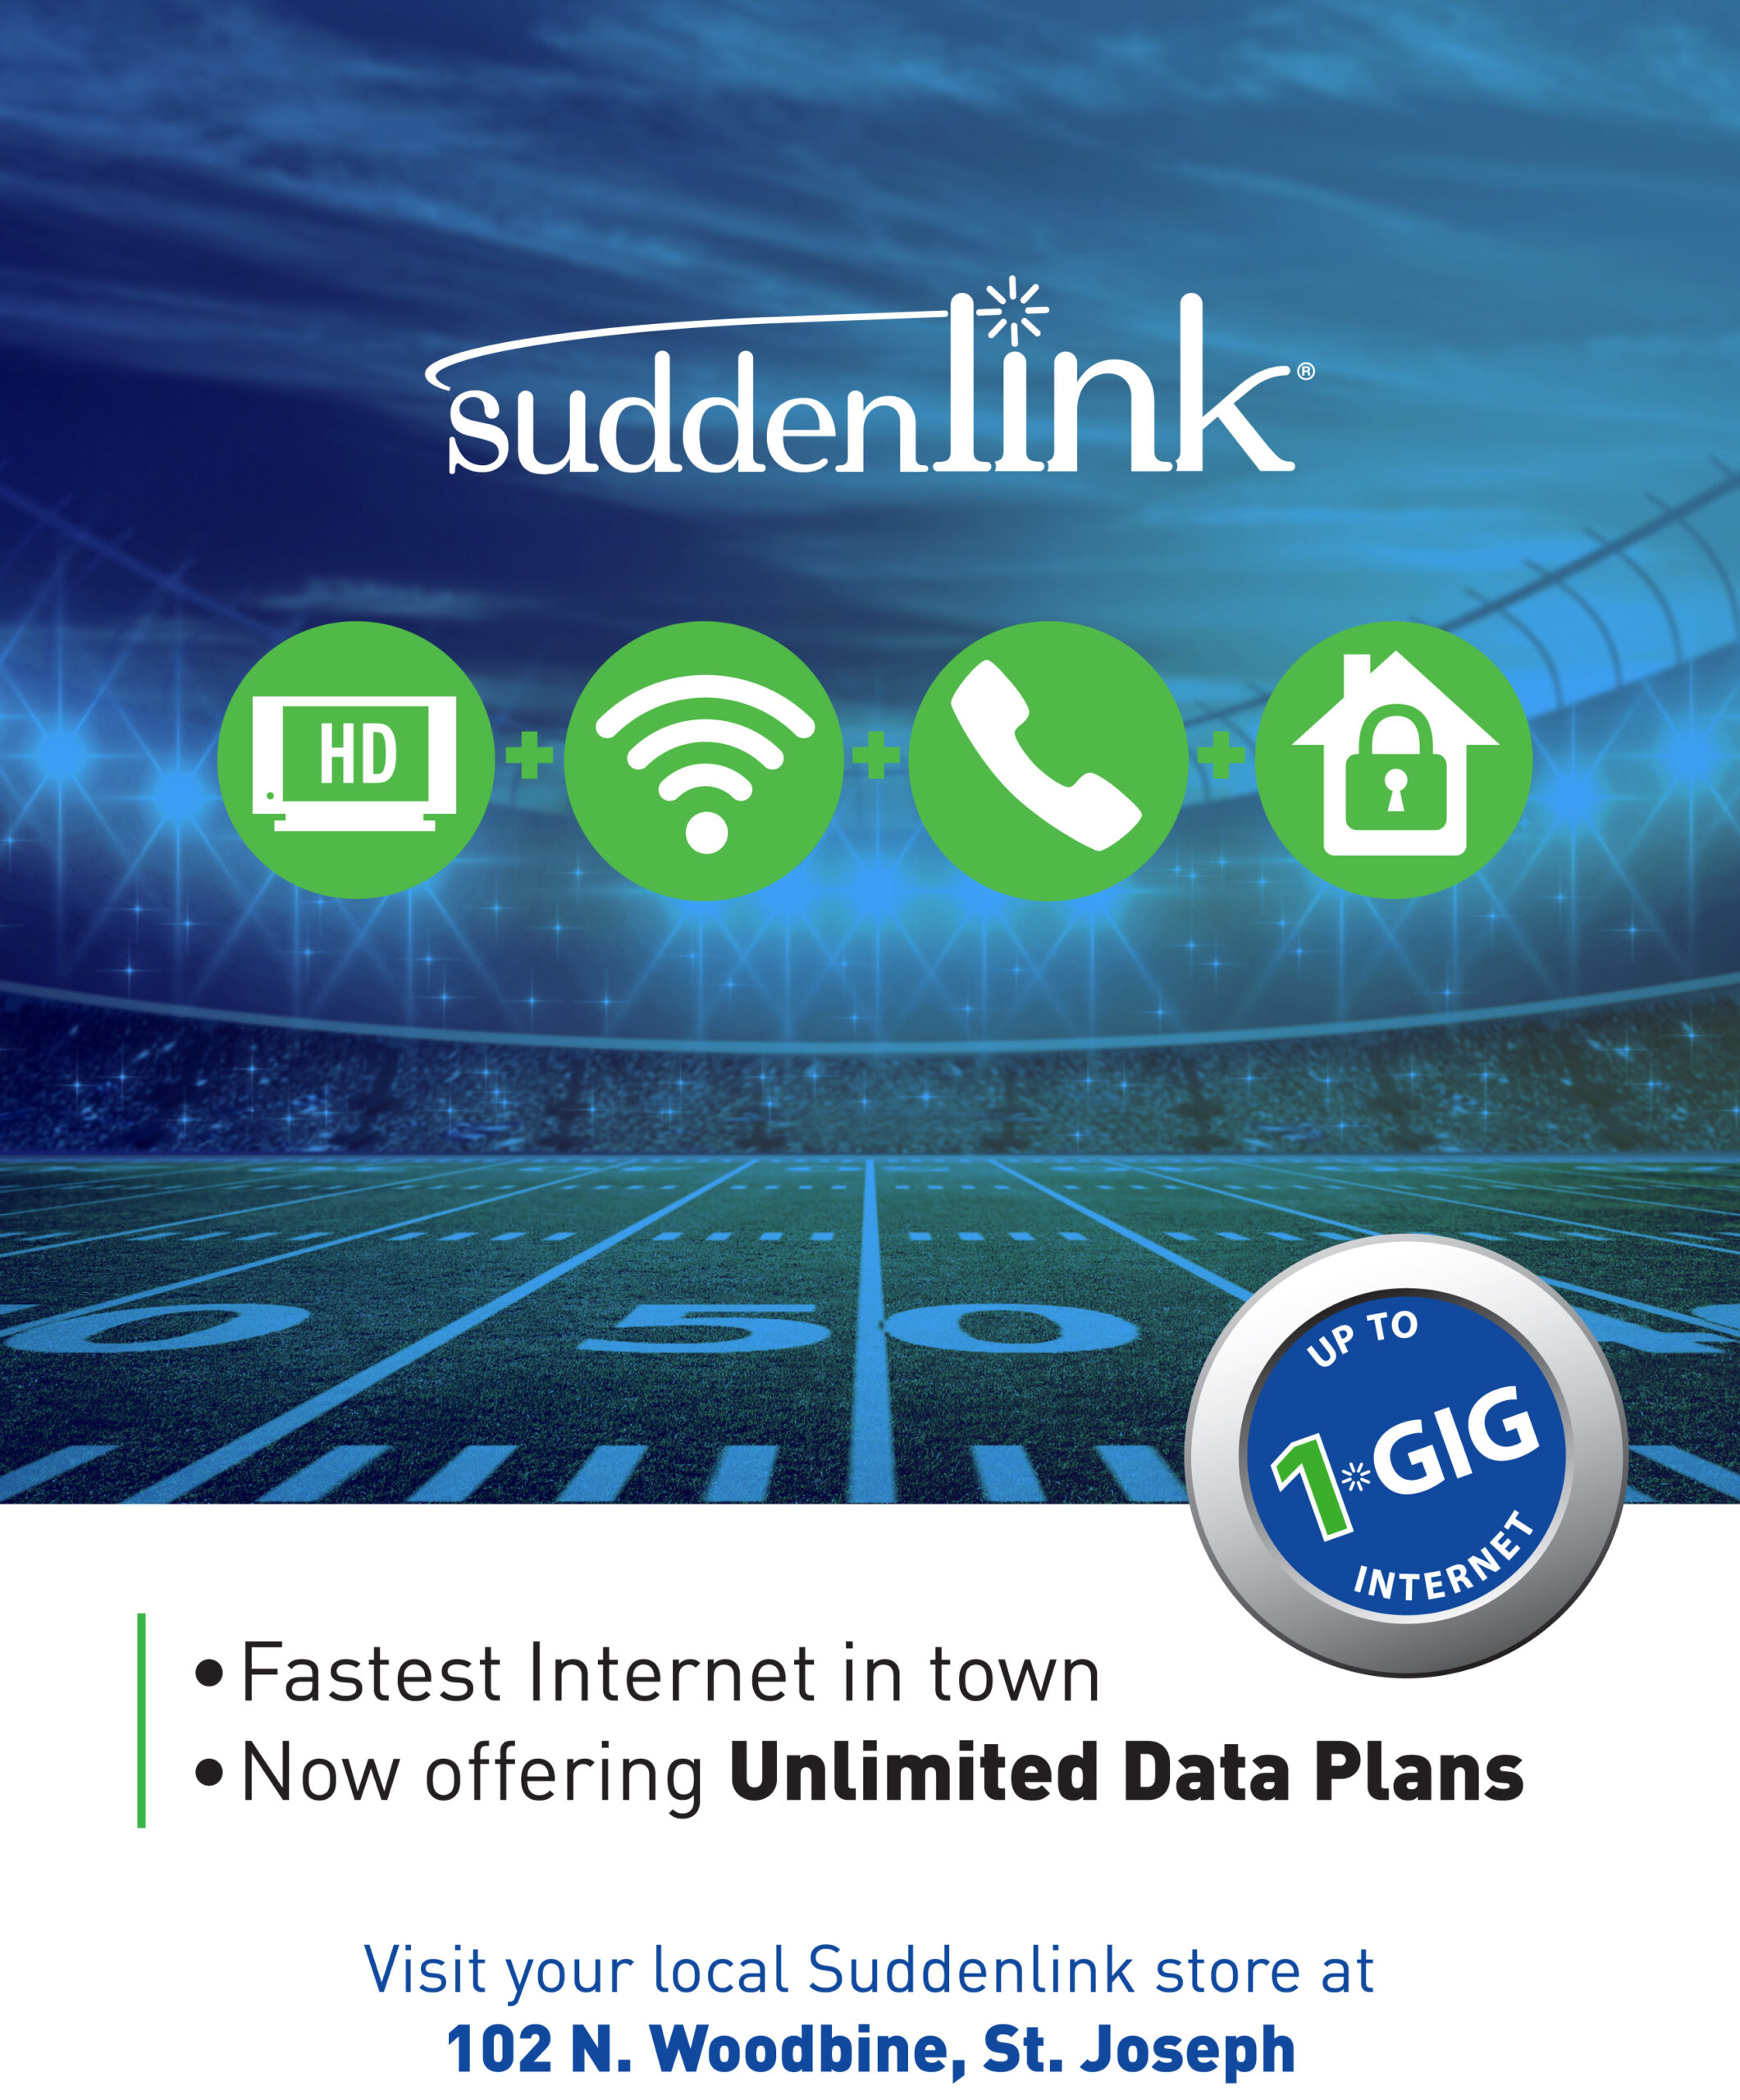 SuddenLink services over flotball field